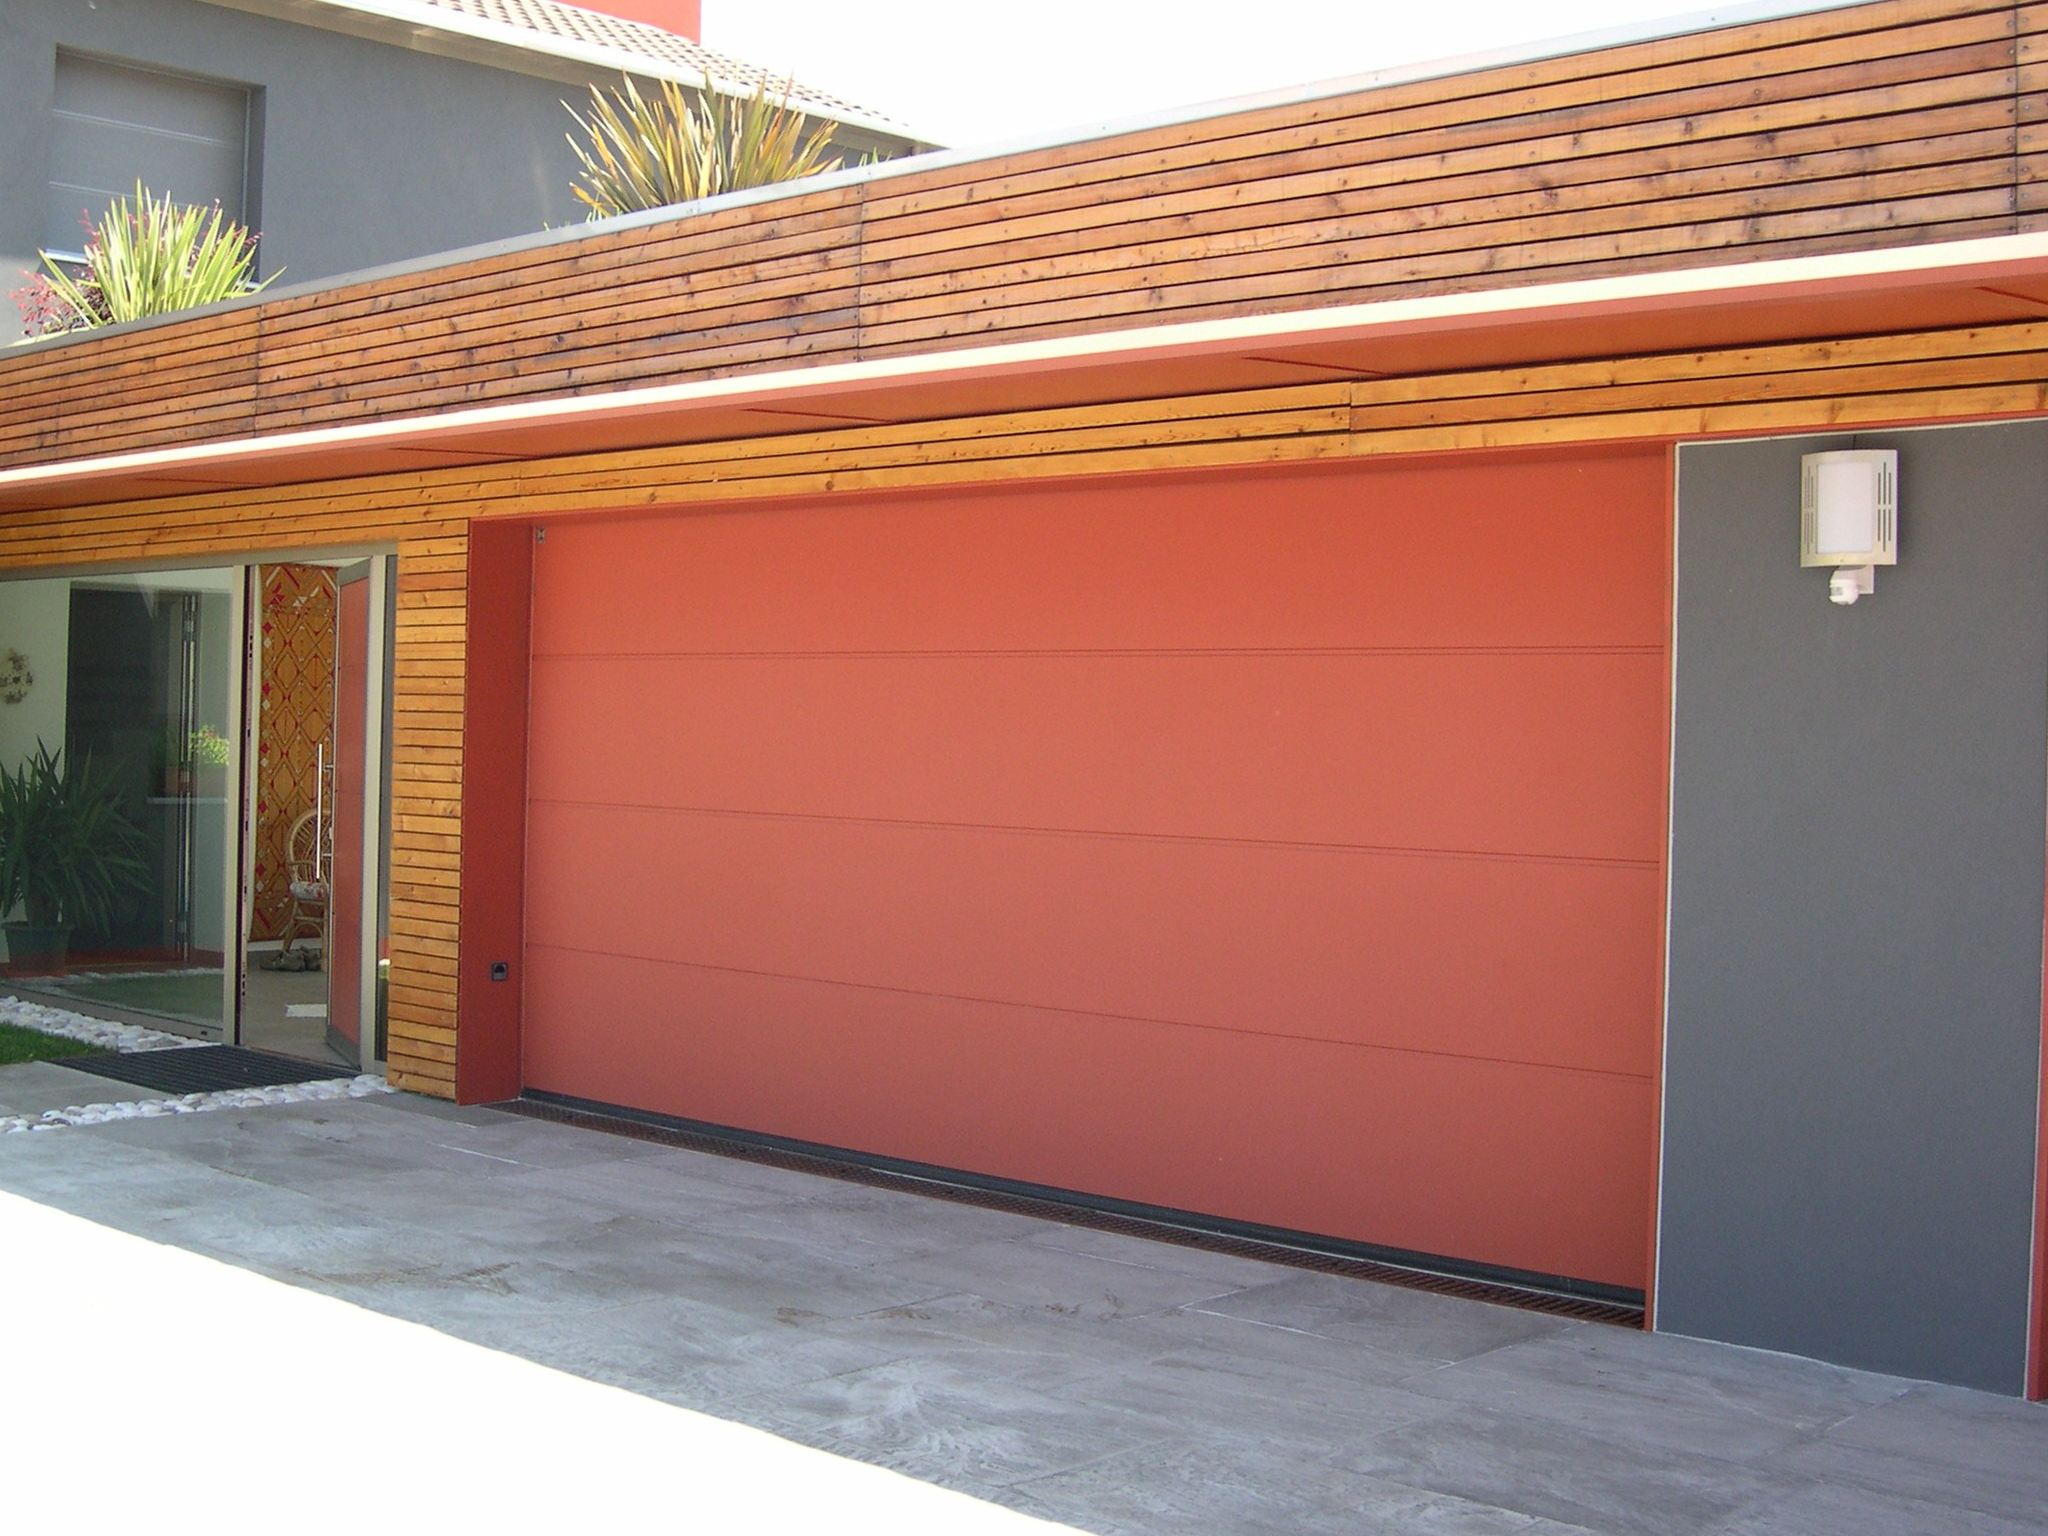 1536 #A36A28 Building Shell Entry Doors And Garage Doors Garage Doors pic Sectional Steel Garage Doors 35912048